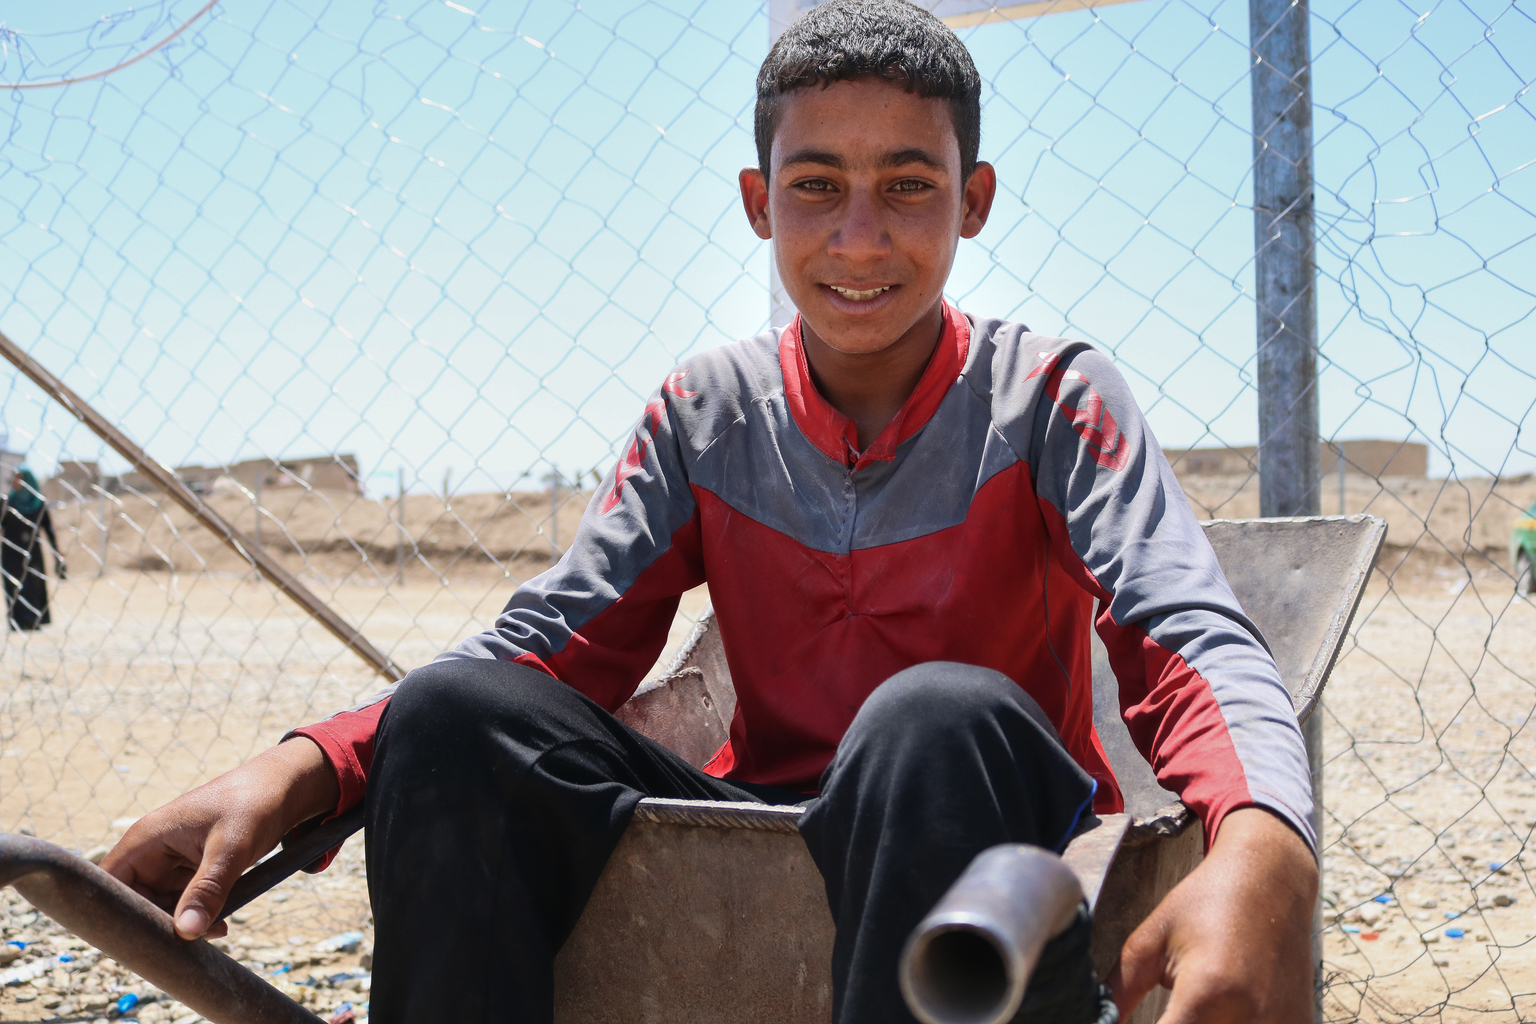 Displaced for just a few months, Hussain has become the sole breadwinner for his family of 15. He makes...